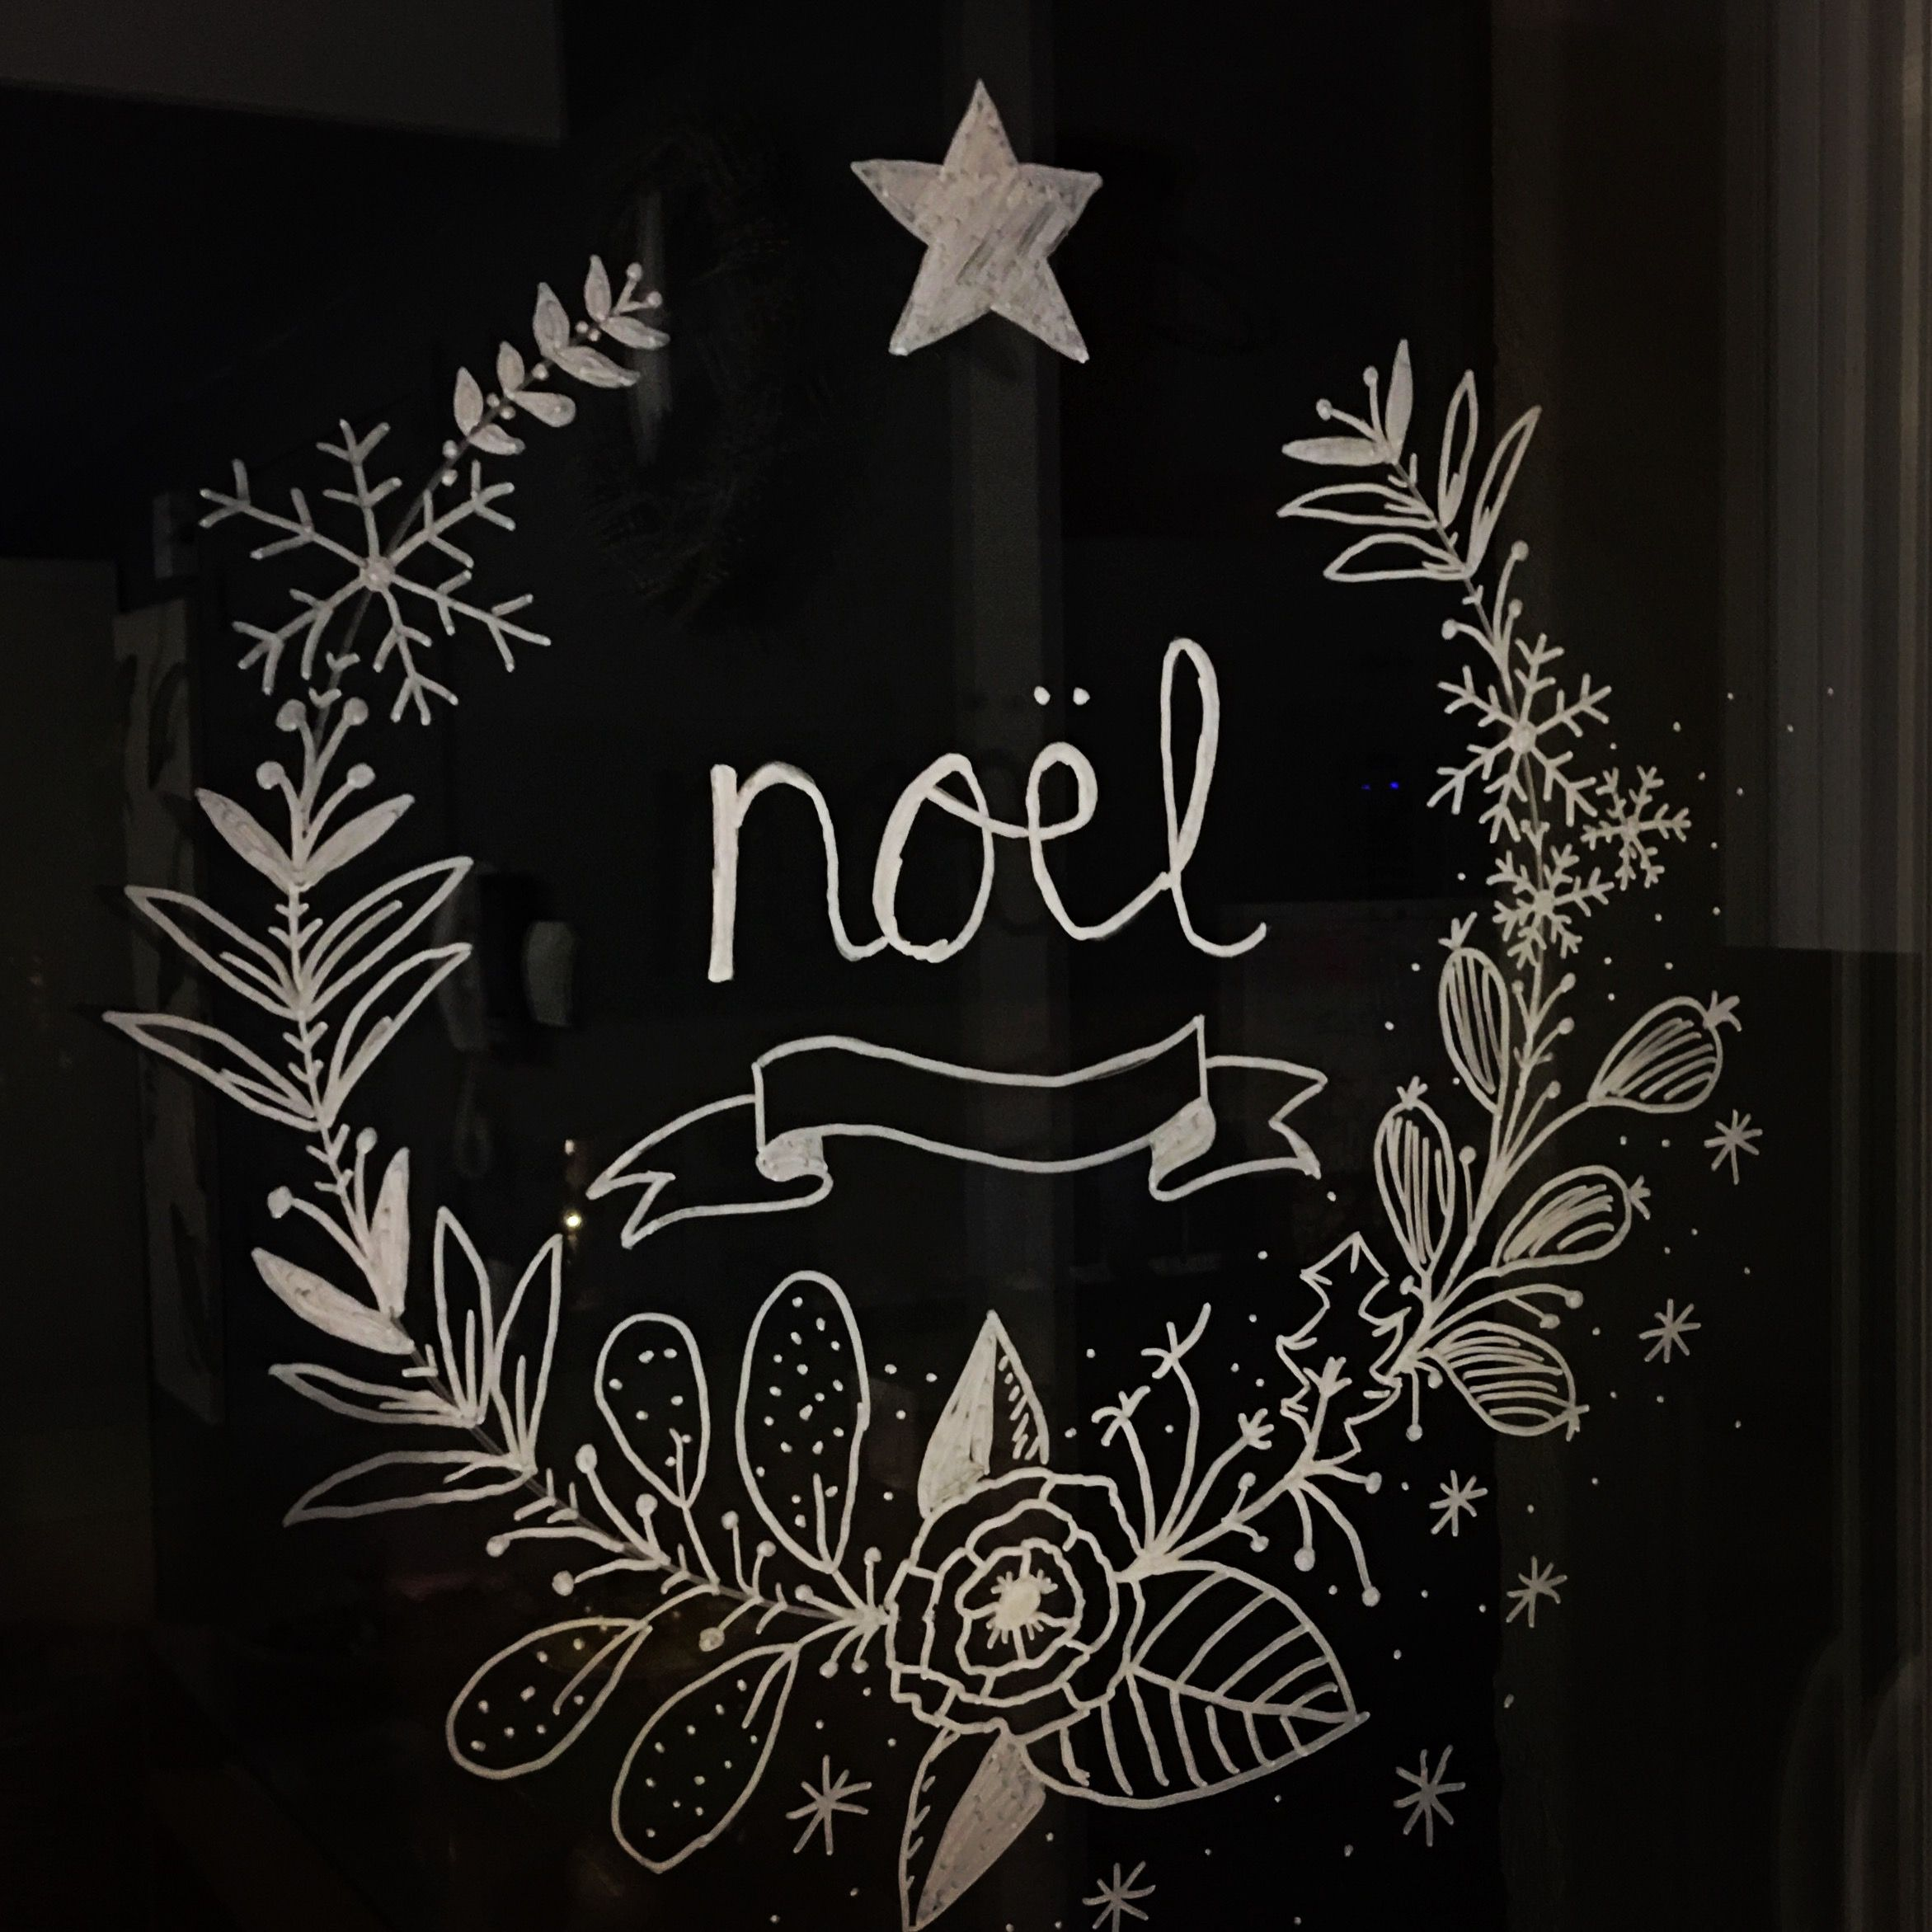 D coration sur ma fen tre au posca fen tres pinterest for Decoration fenetre noel peinture